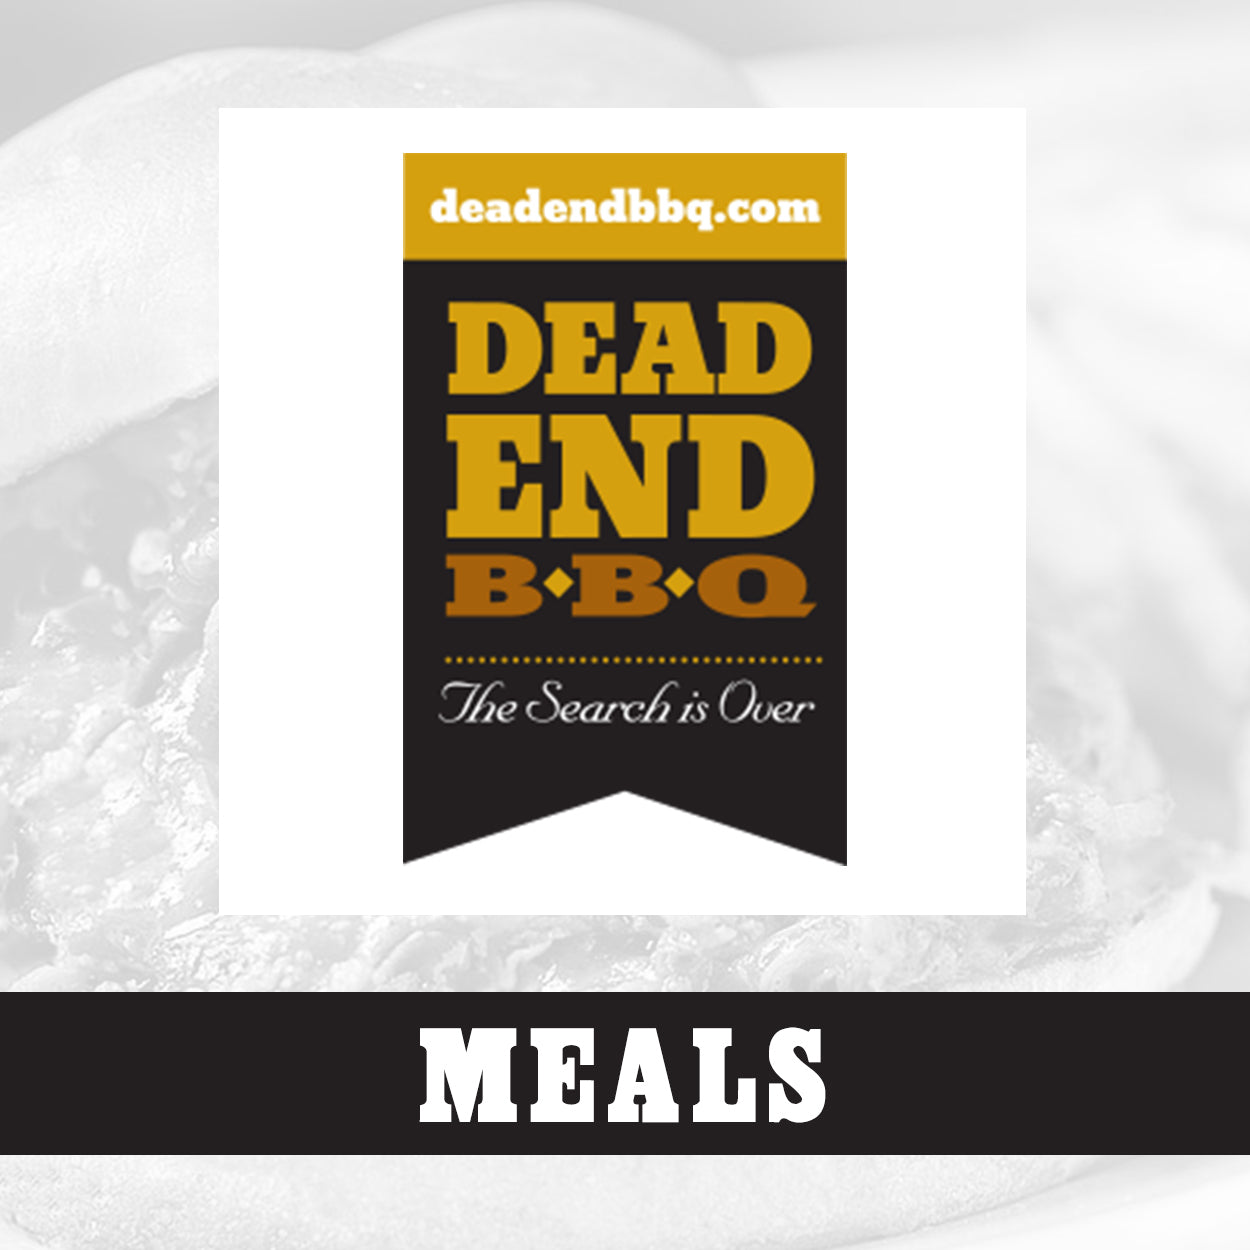 Dead End BBQ Full Tailgate Meals